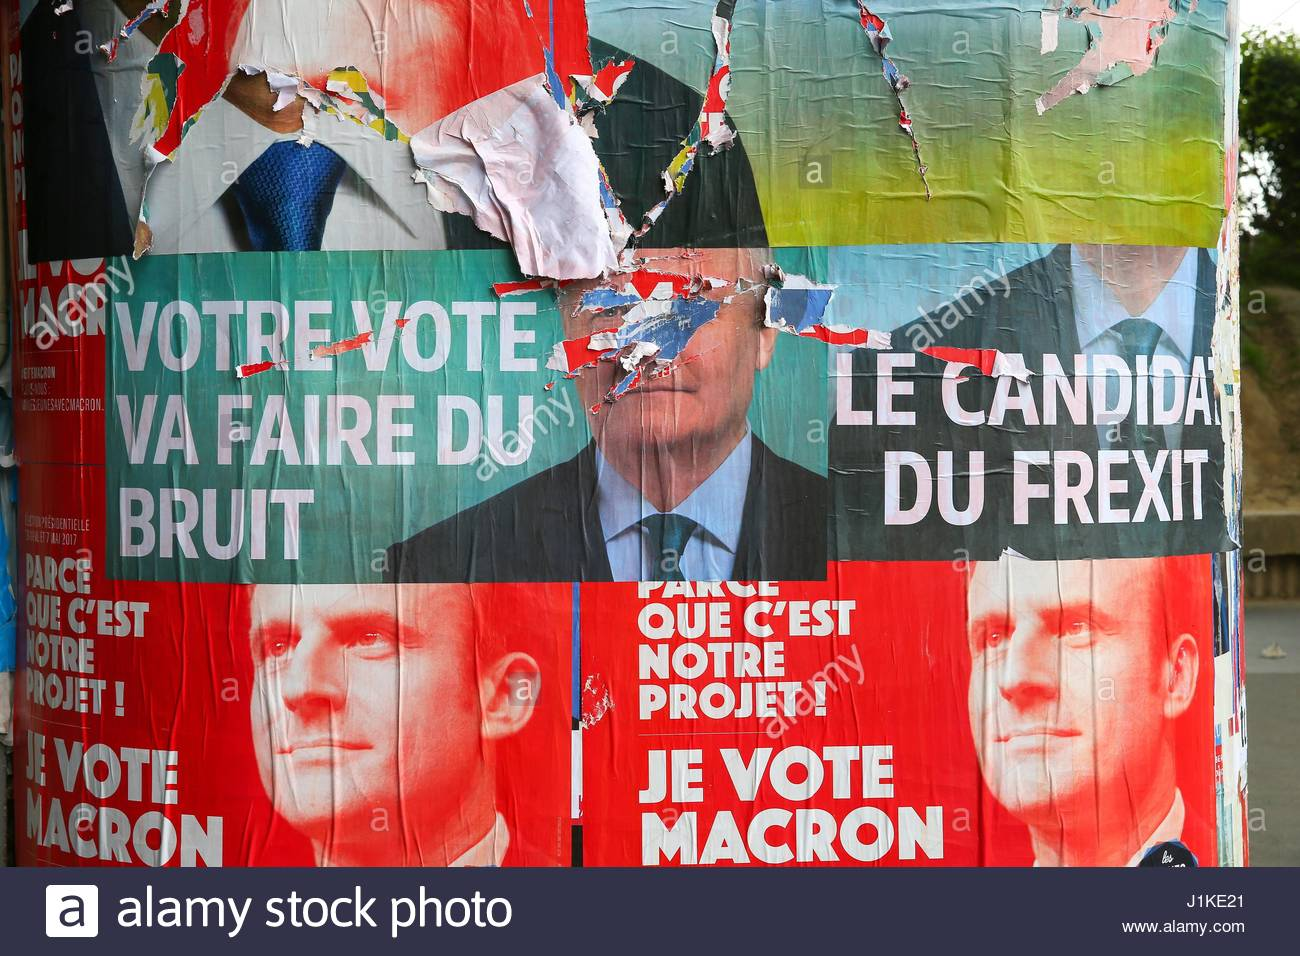 Paris, France. 22nd Apr, 2017. Campaign posters are seen torn and covered up in the streets of Paris, France on - Stock Image